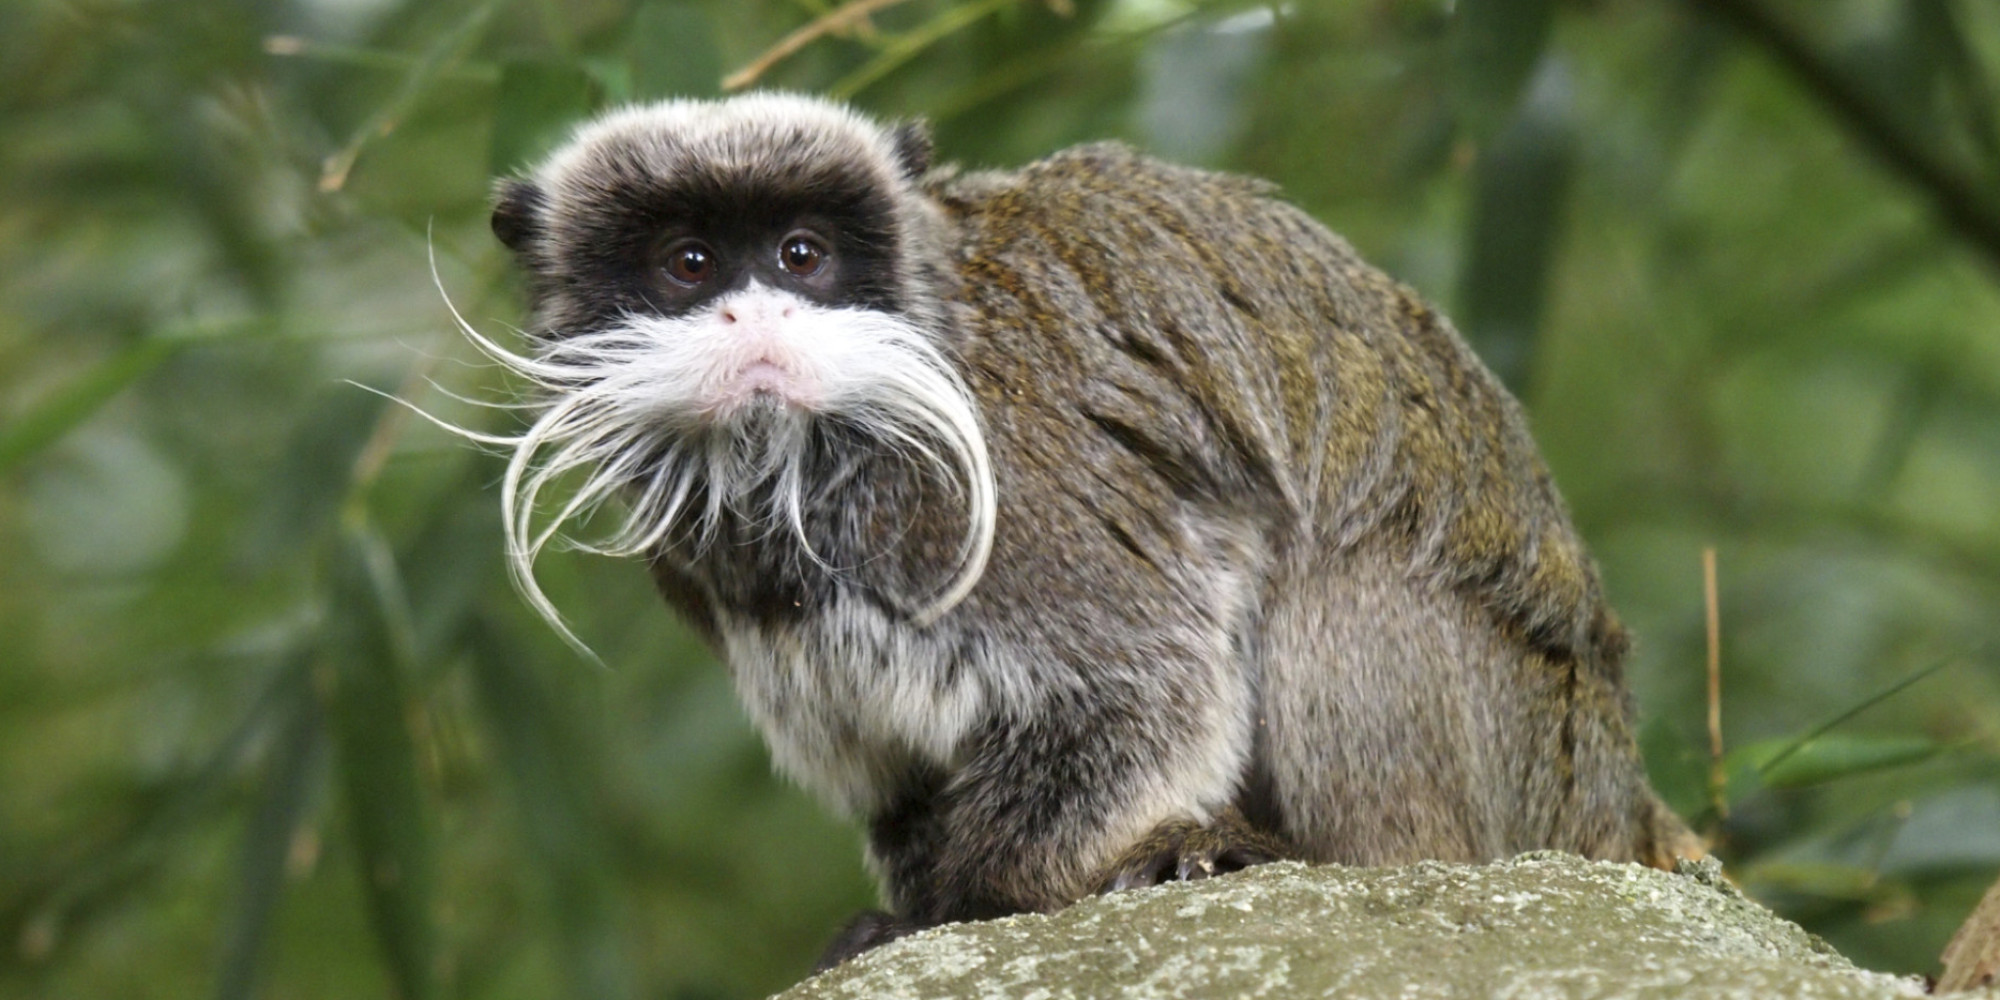 Beardy Monkey: What Can Monkeys Teach Hipsters About Beard Evolution